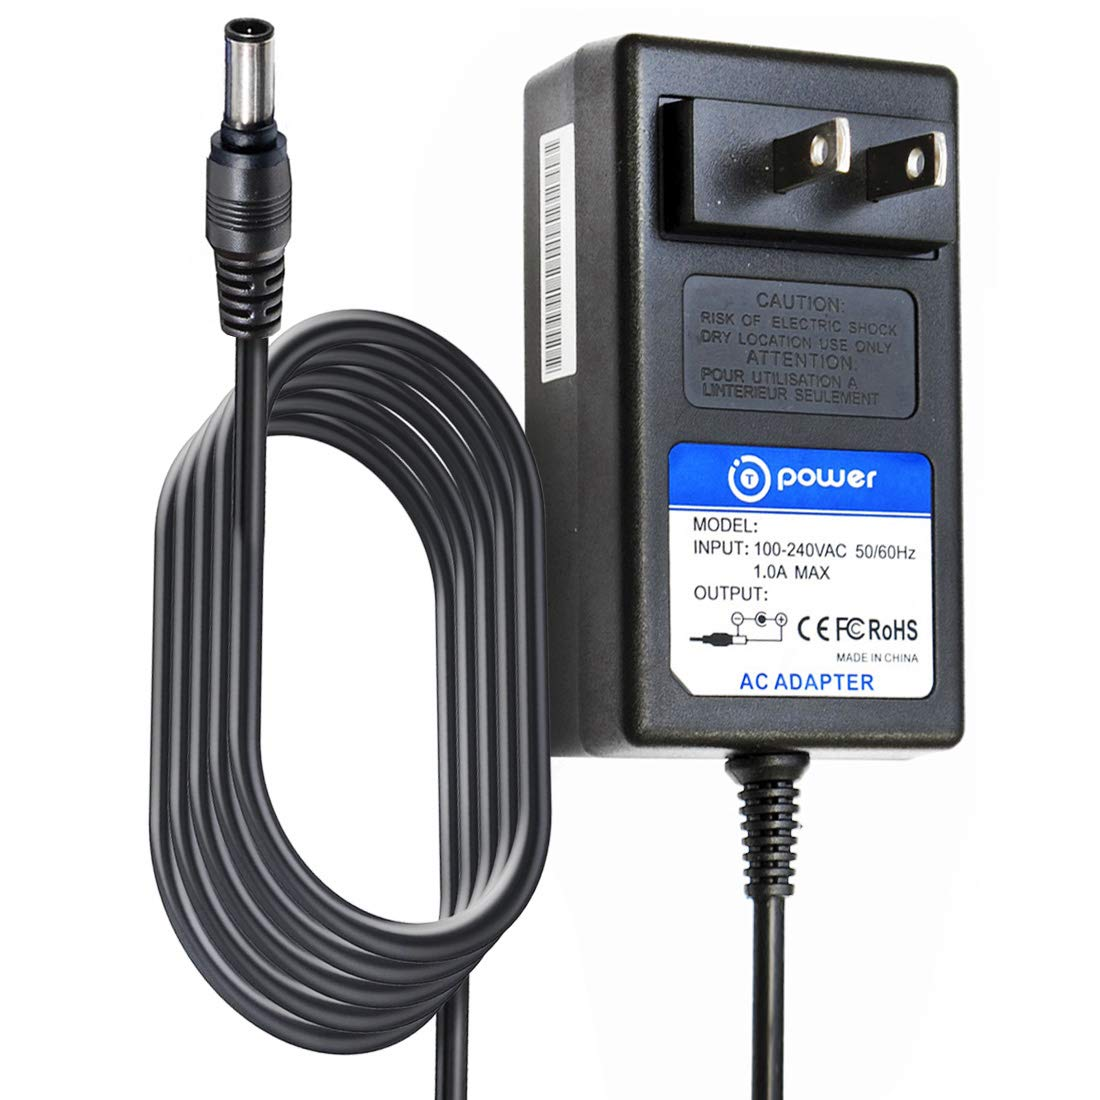 T POWER 12V Ac Dc Adapter Charger Compatible for Casio Privia Digital Piano Keyboard (Supply See Model List in Description) AD-A12150LW ADA12150LW PX, WK, CDP, AP, CTK Series PX130RD BK WE Power